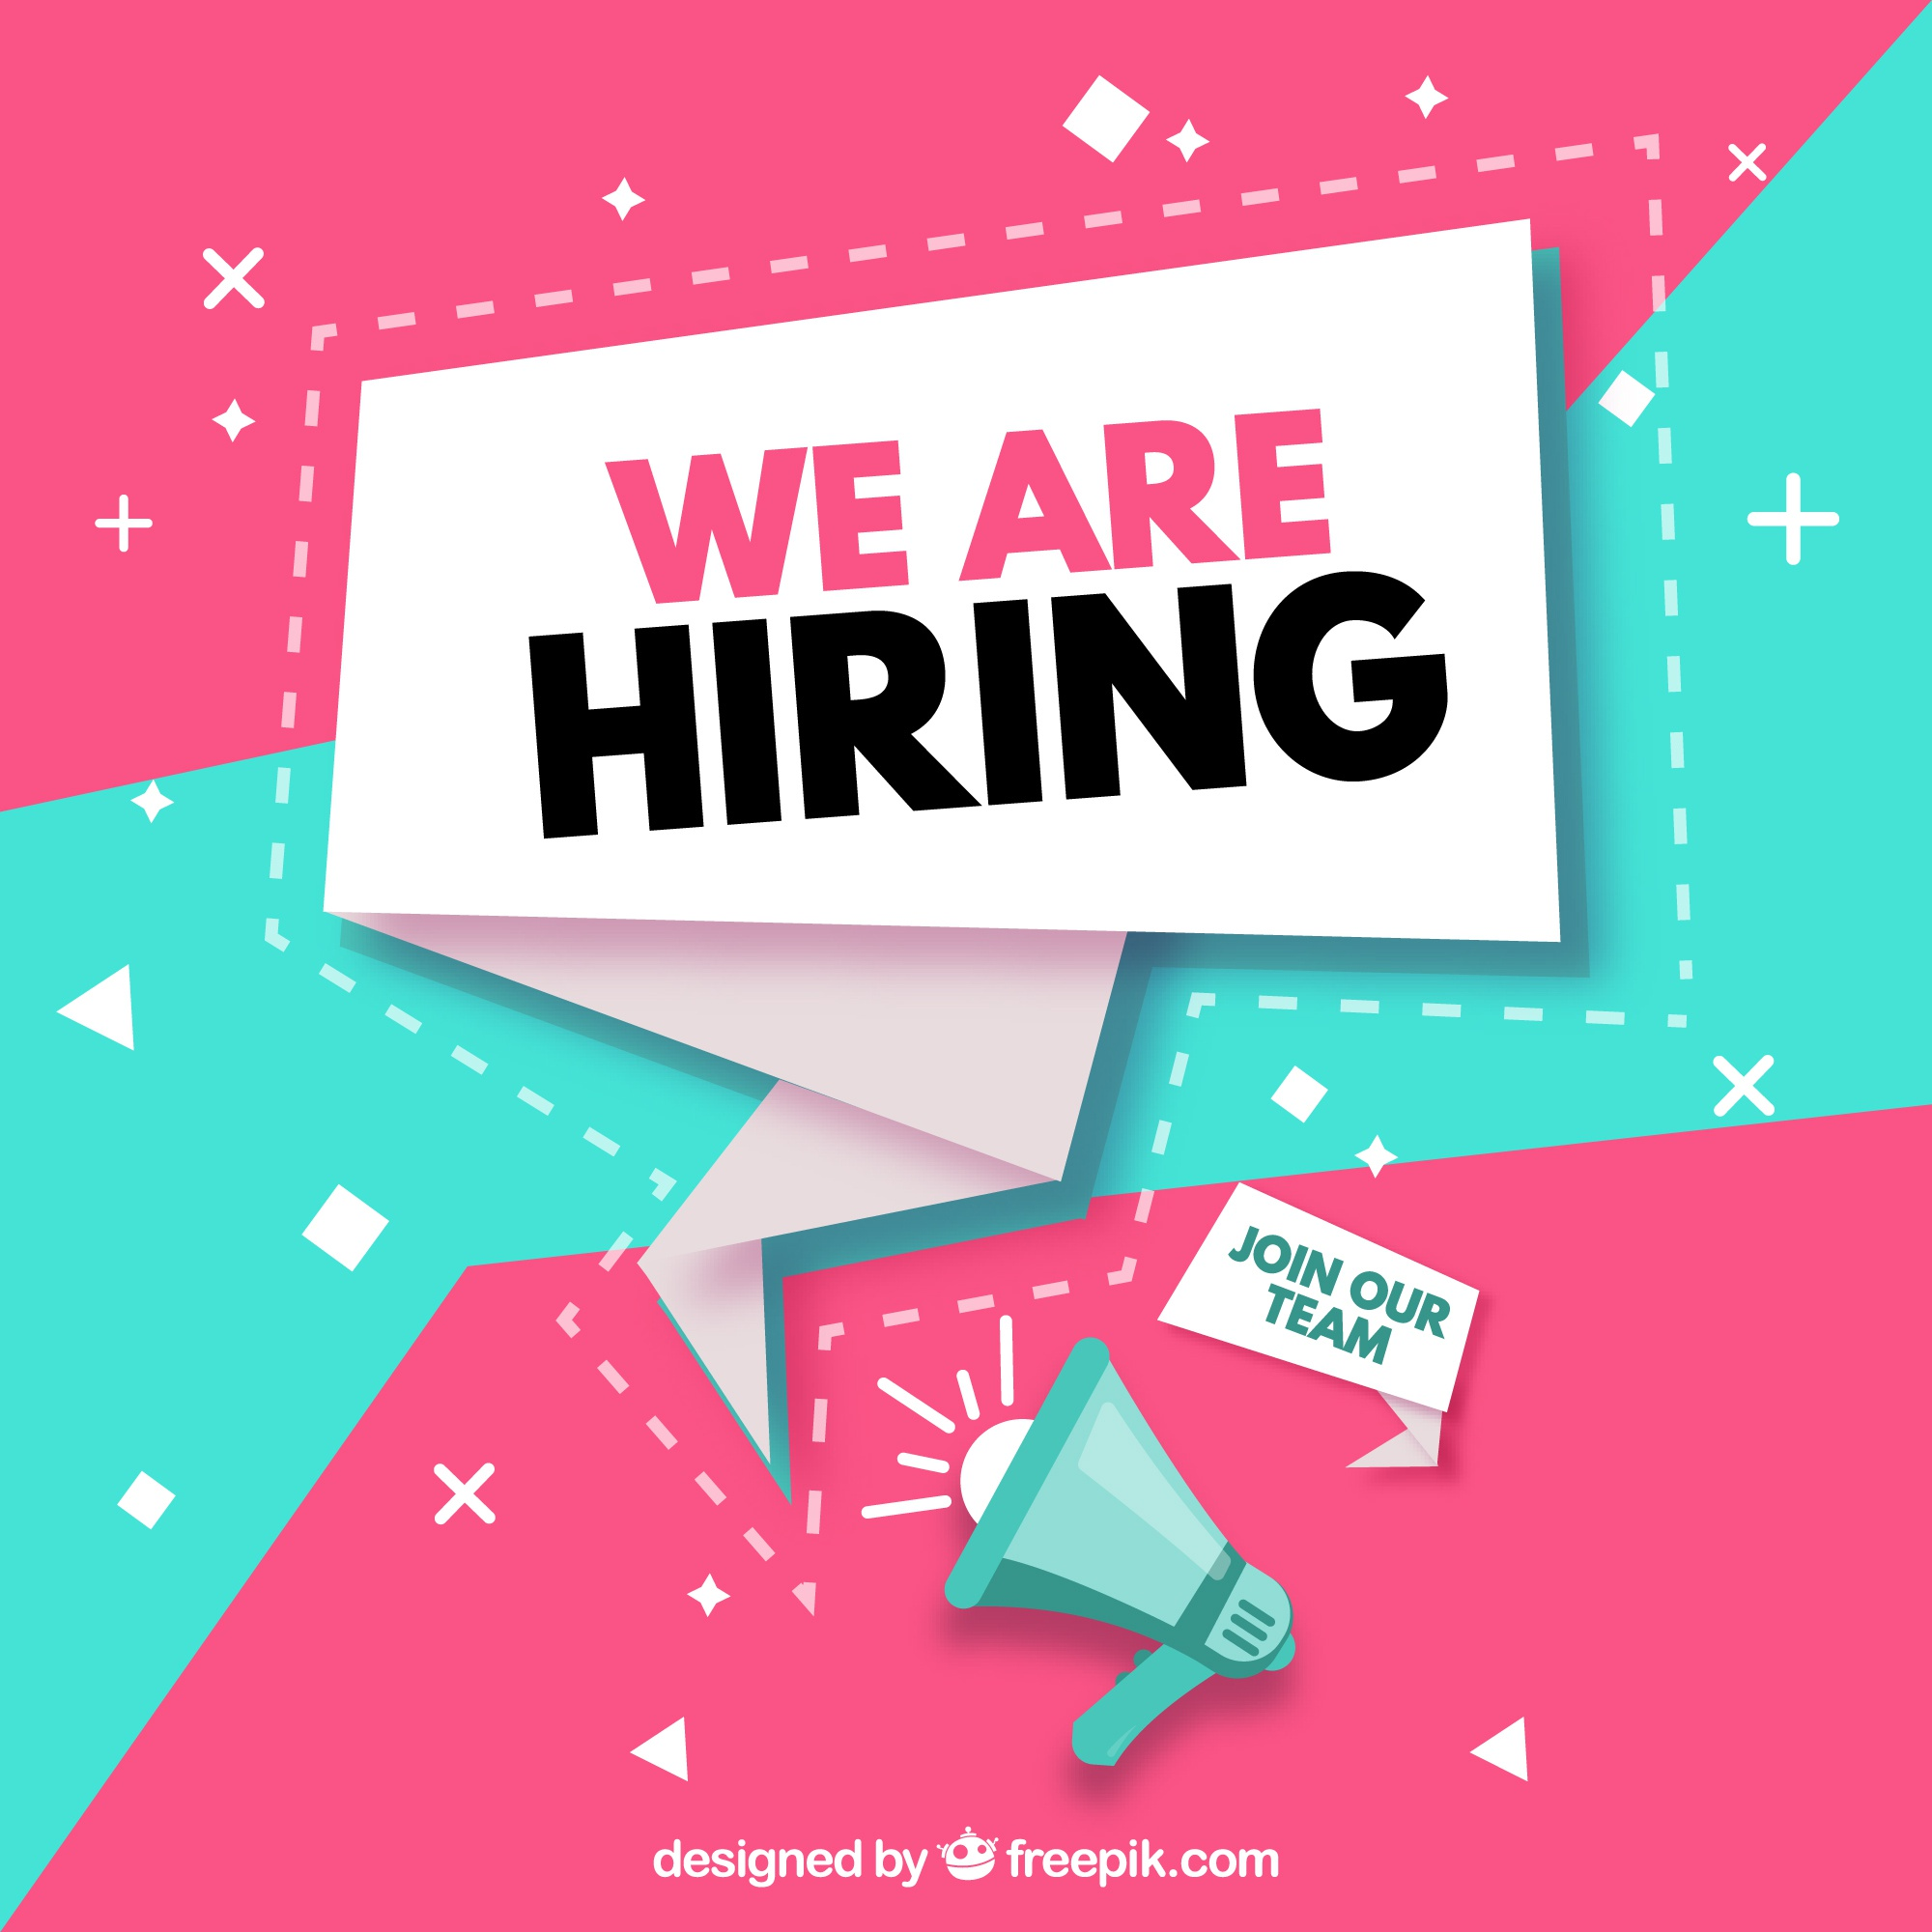 Job vacancy composition with abstract design